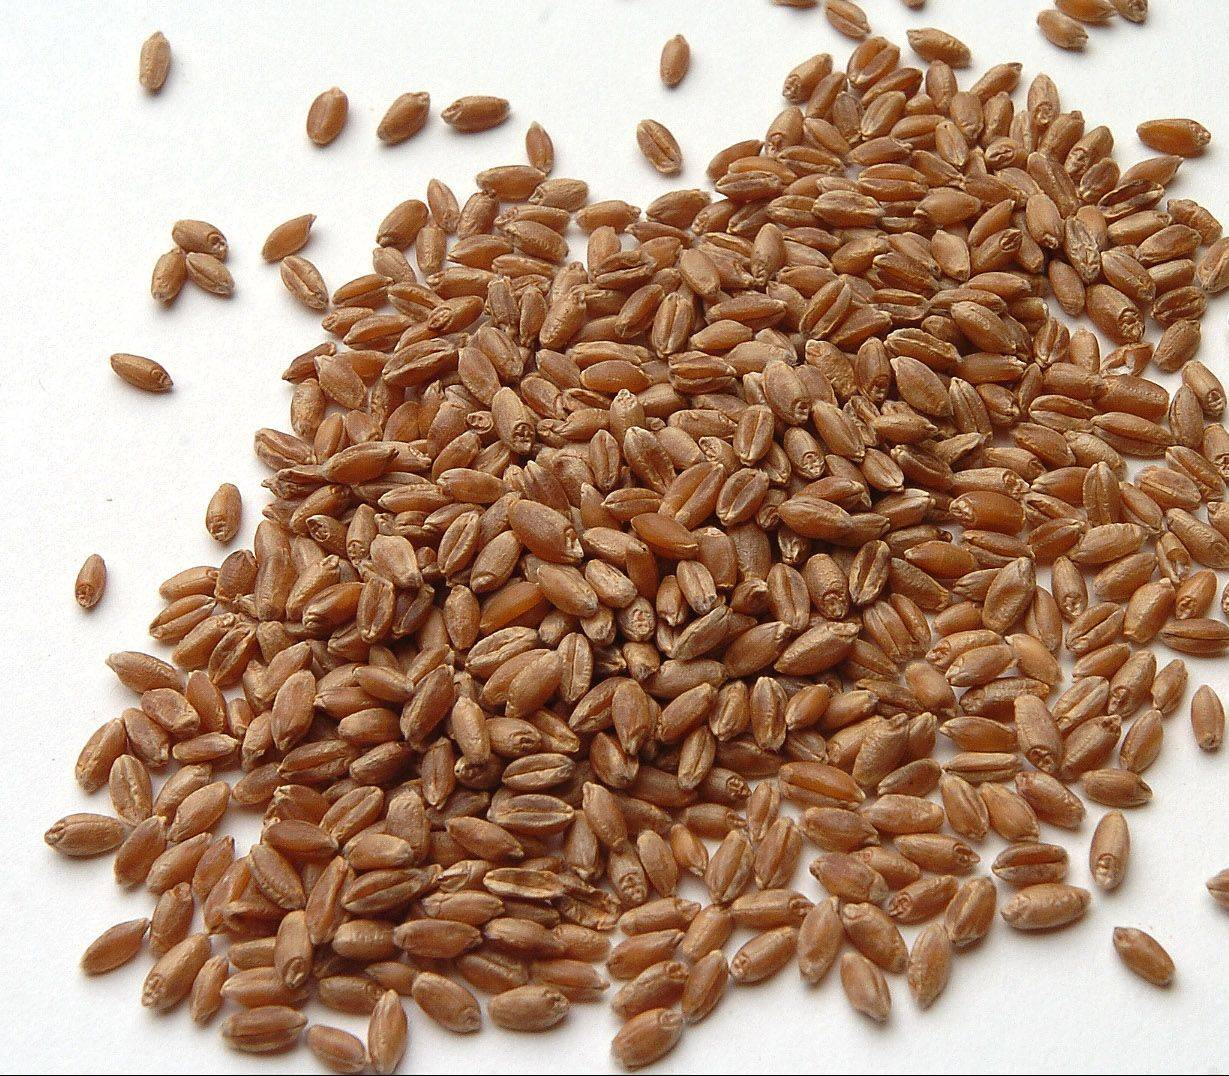 Bob Chwedyk/bchwedyk@dailyherald.com Wheat Berries